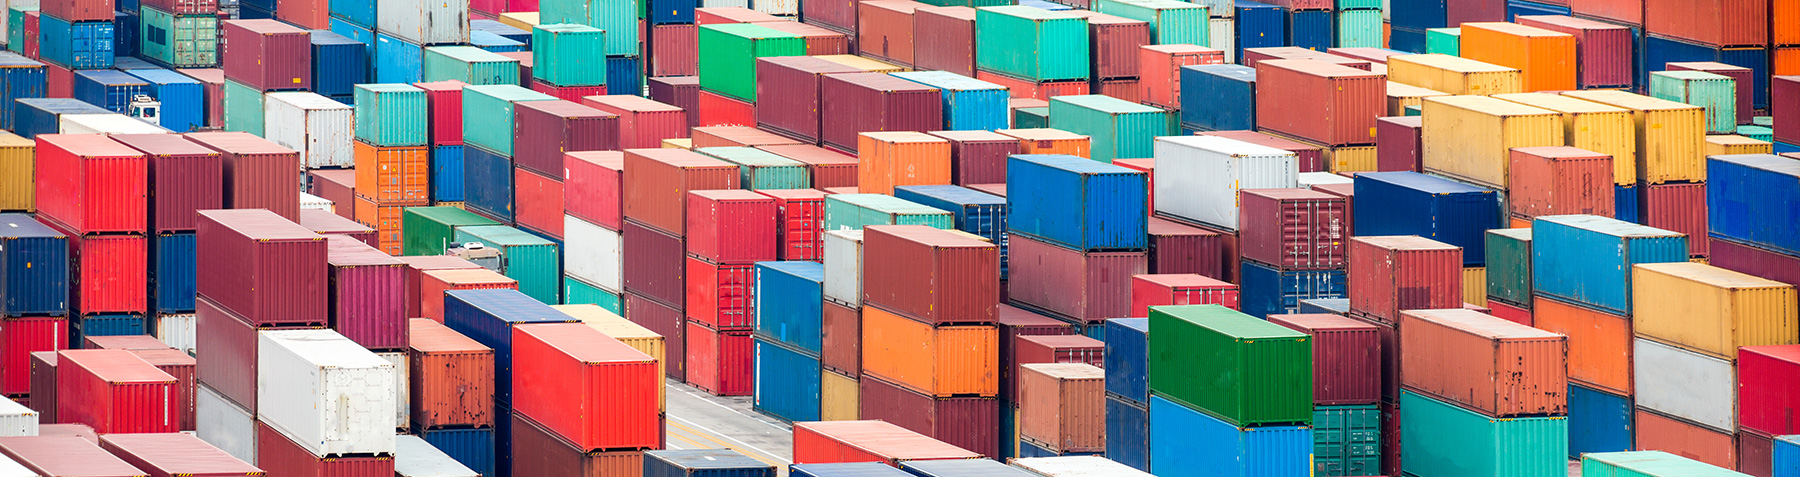 Global Logistical Connections Container Specifications Unit Conversion Tool